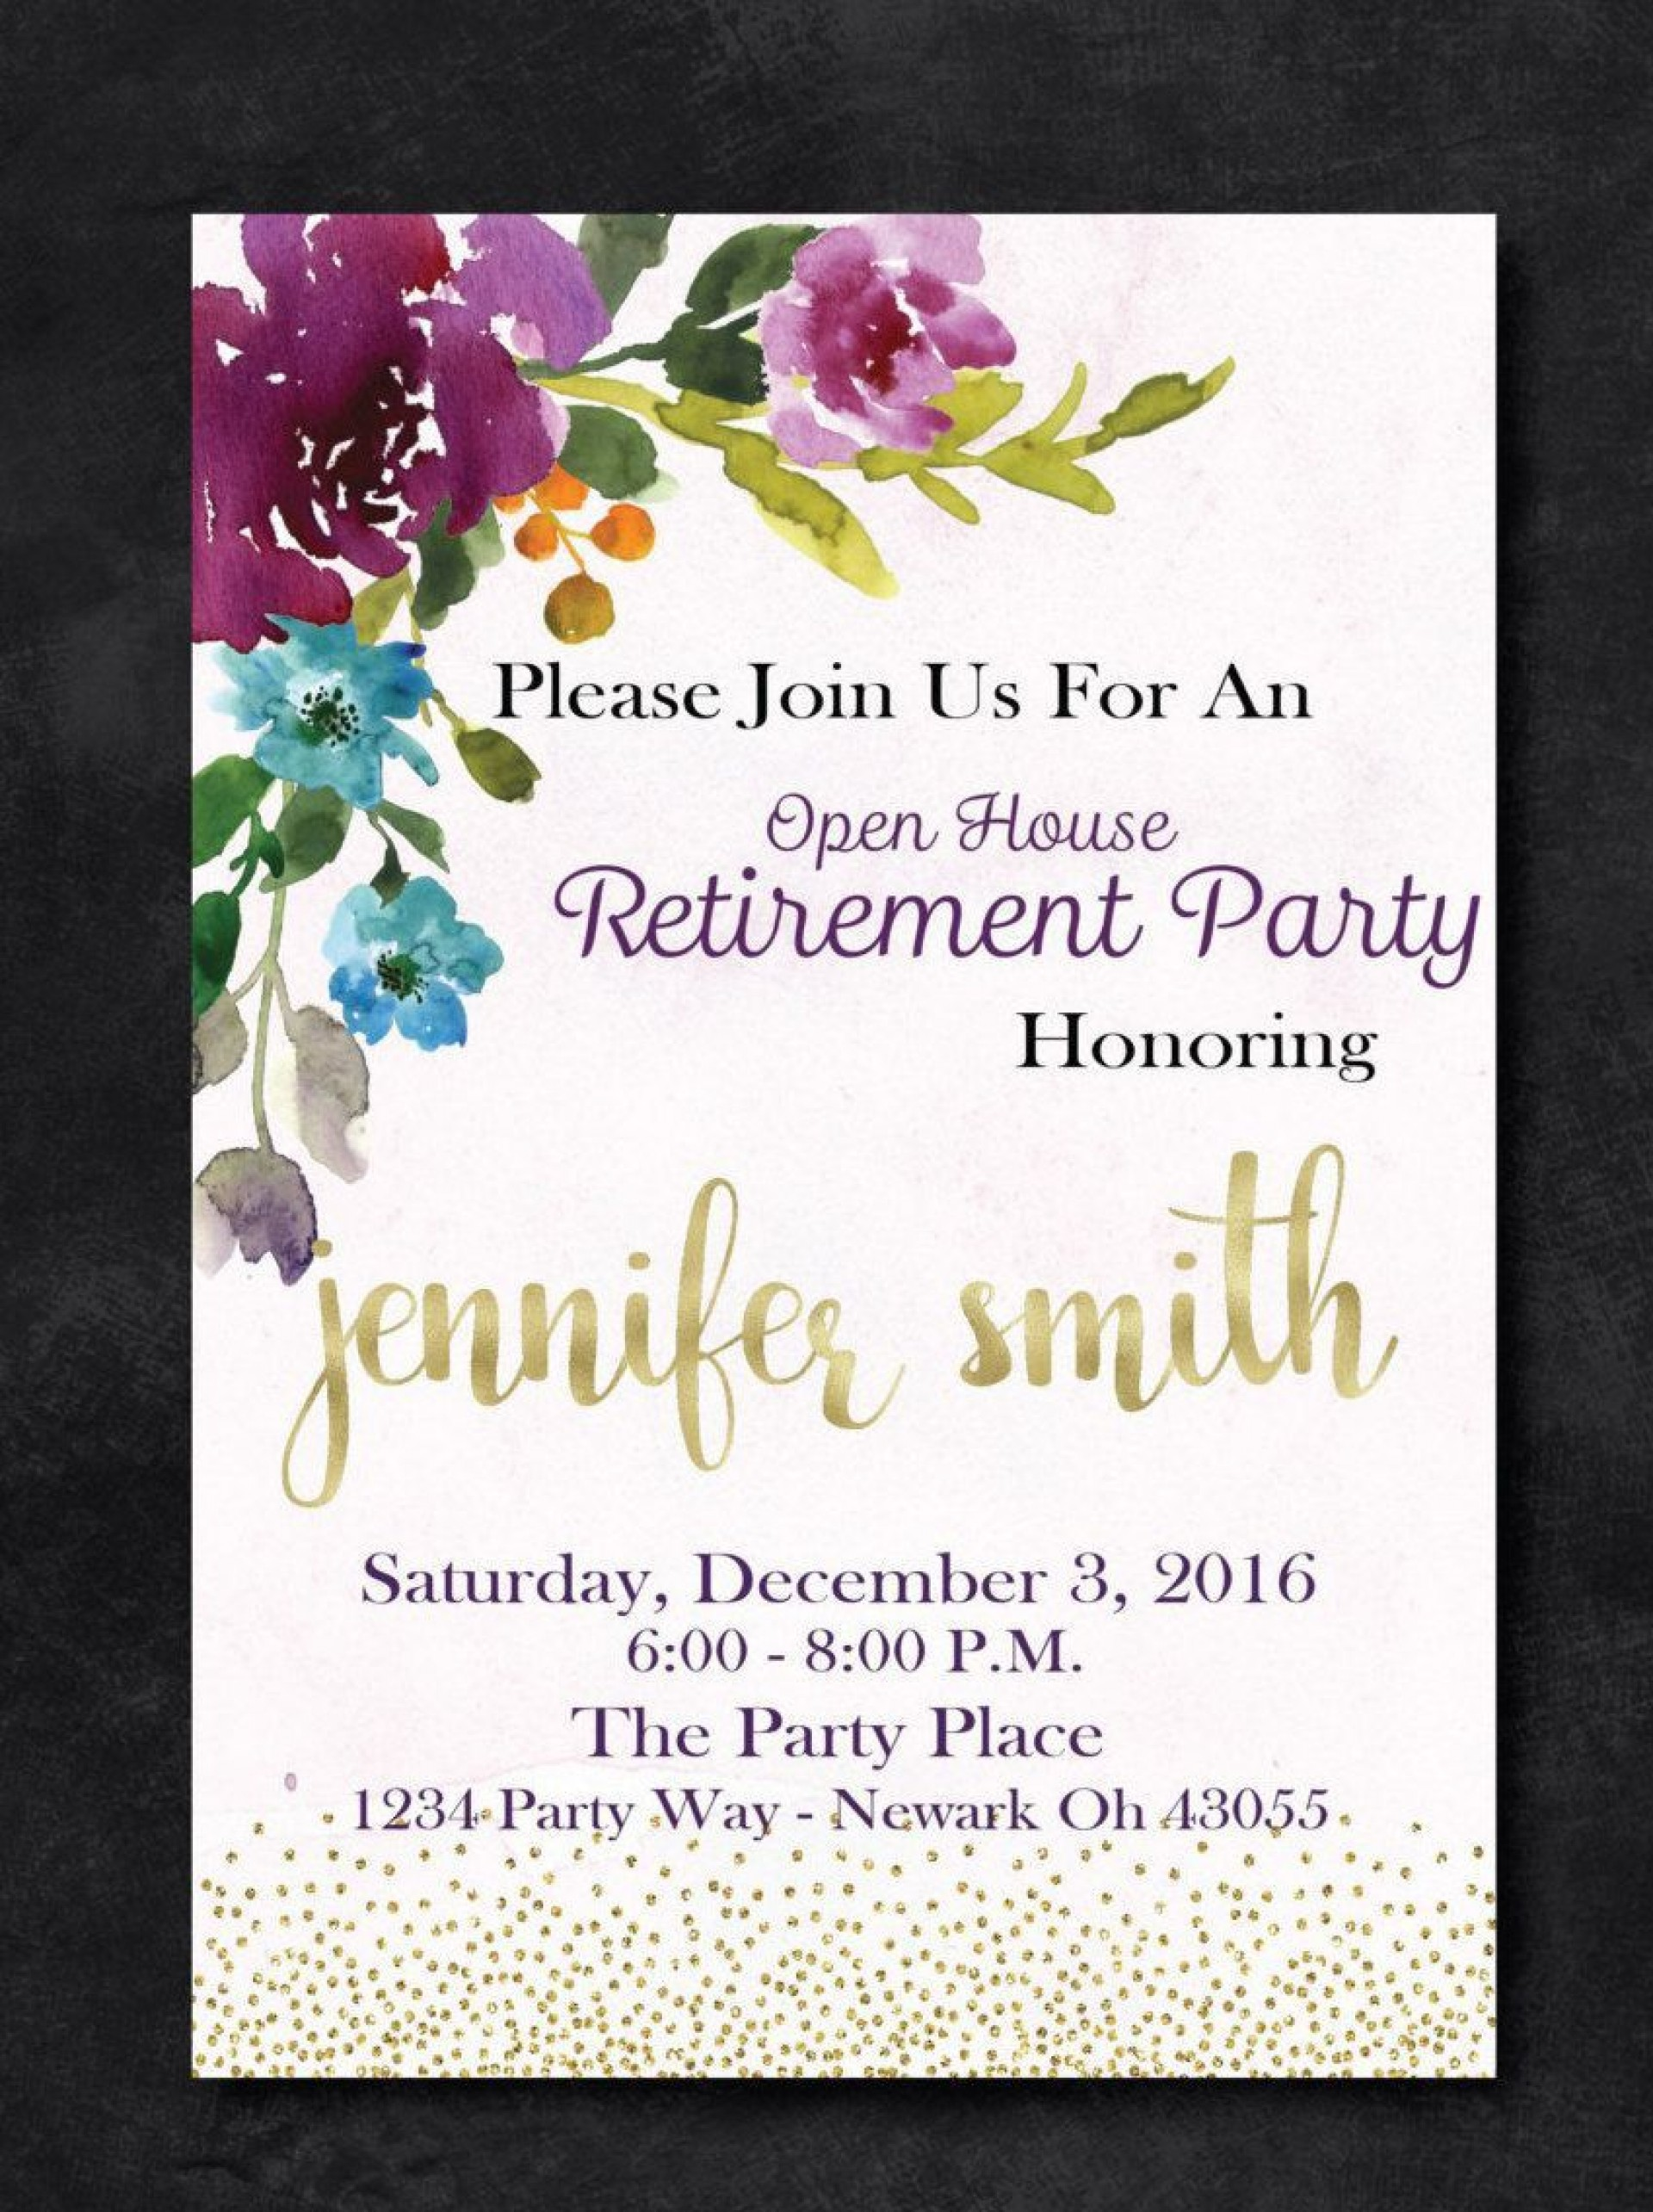 009 Marvelou Retirement Party Invitation Template Free High Definition  M Word1920